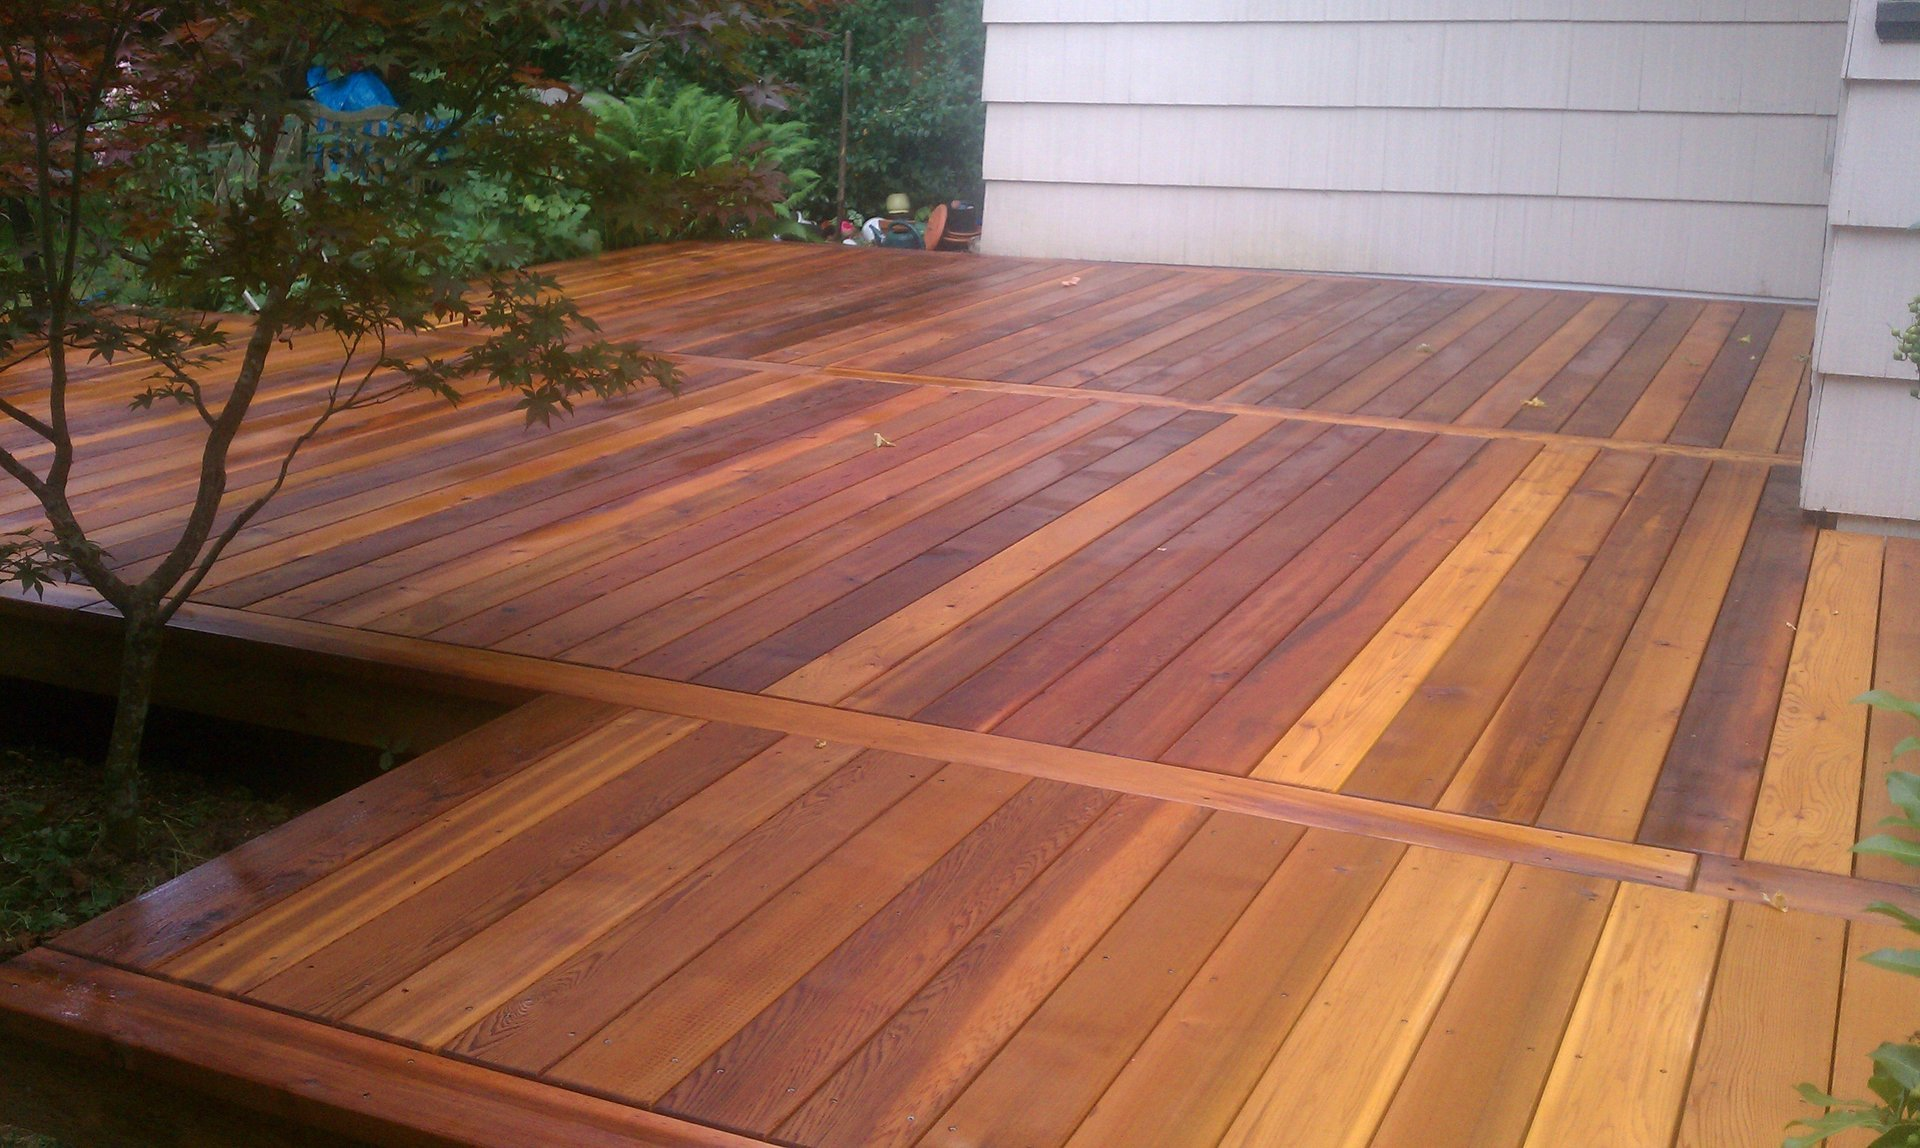 Deck renovation and upgrade project